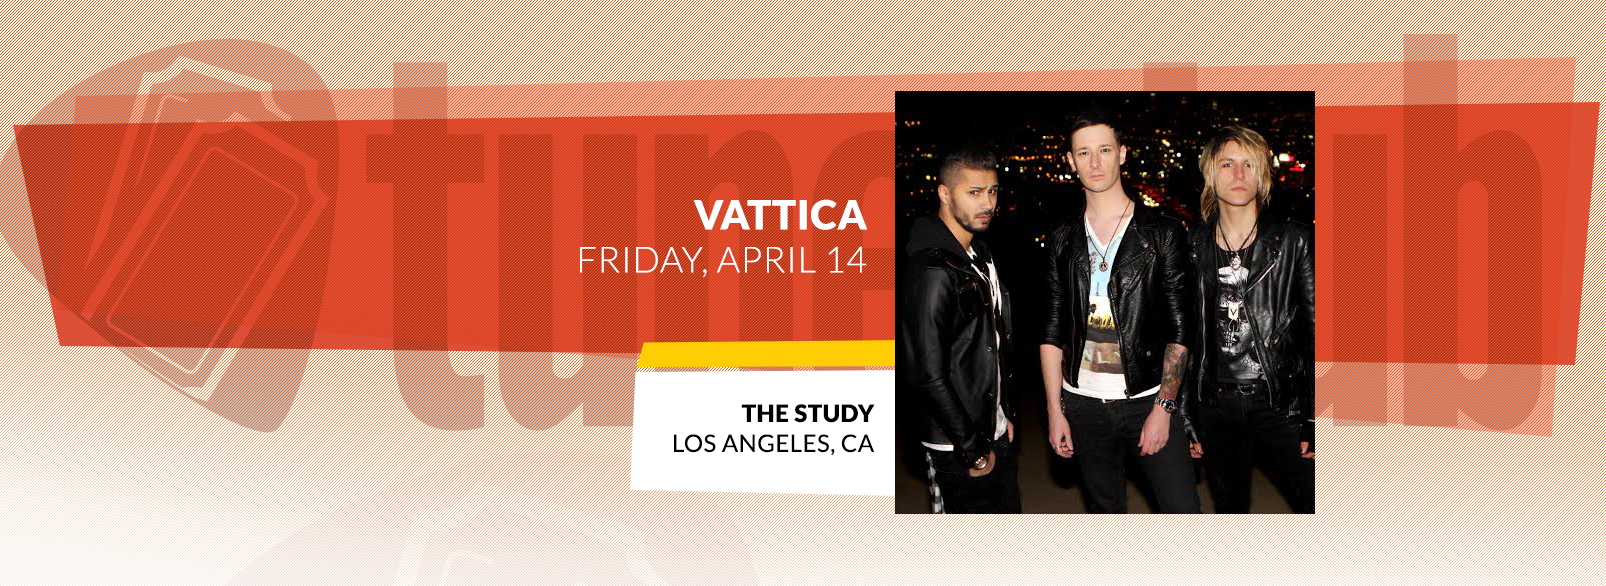 Vattica @ The Study